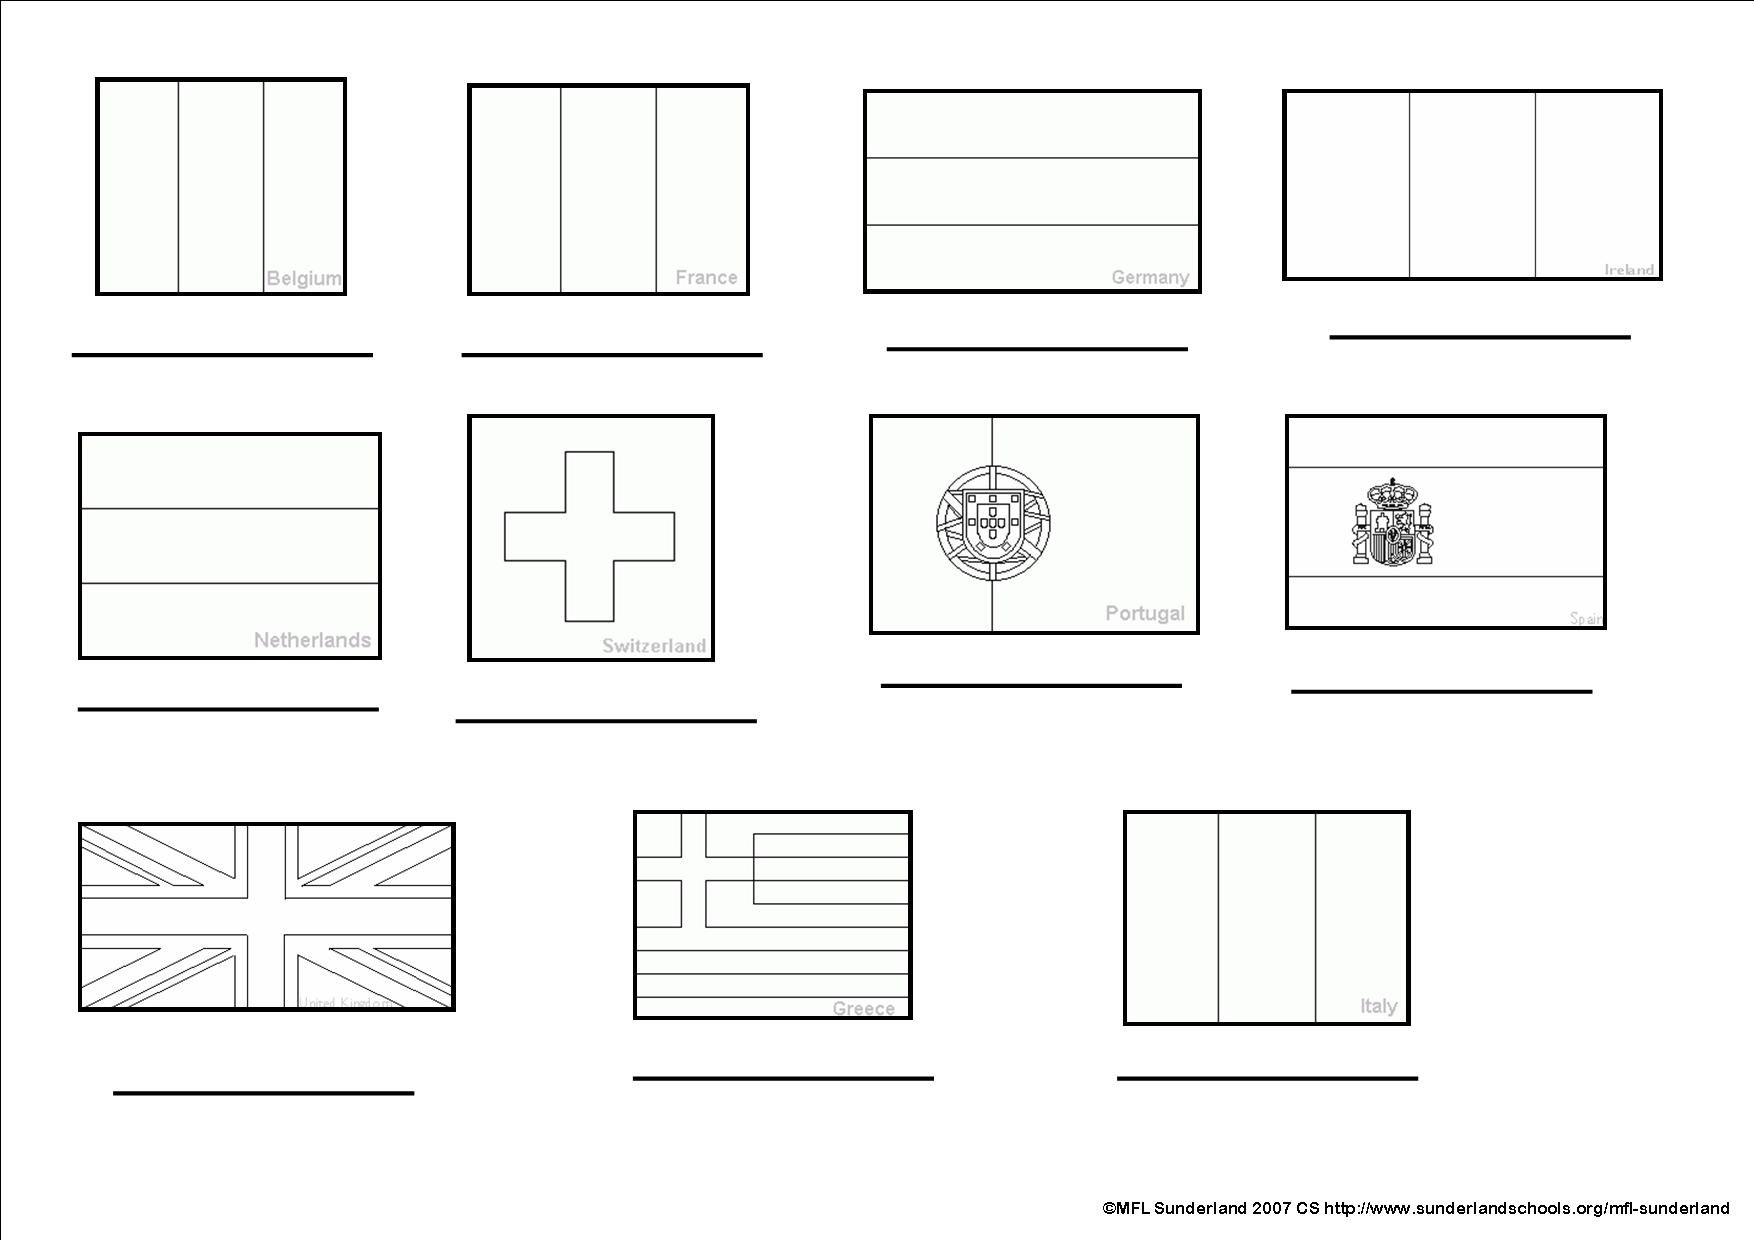 Worksheets Ir A Infinitive Worksheet spanish ks3 worksheets flags to colour in and label jpg 124 kb